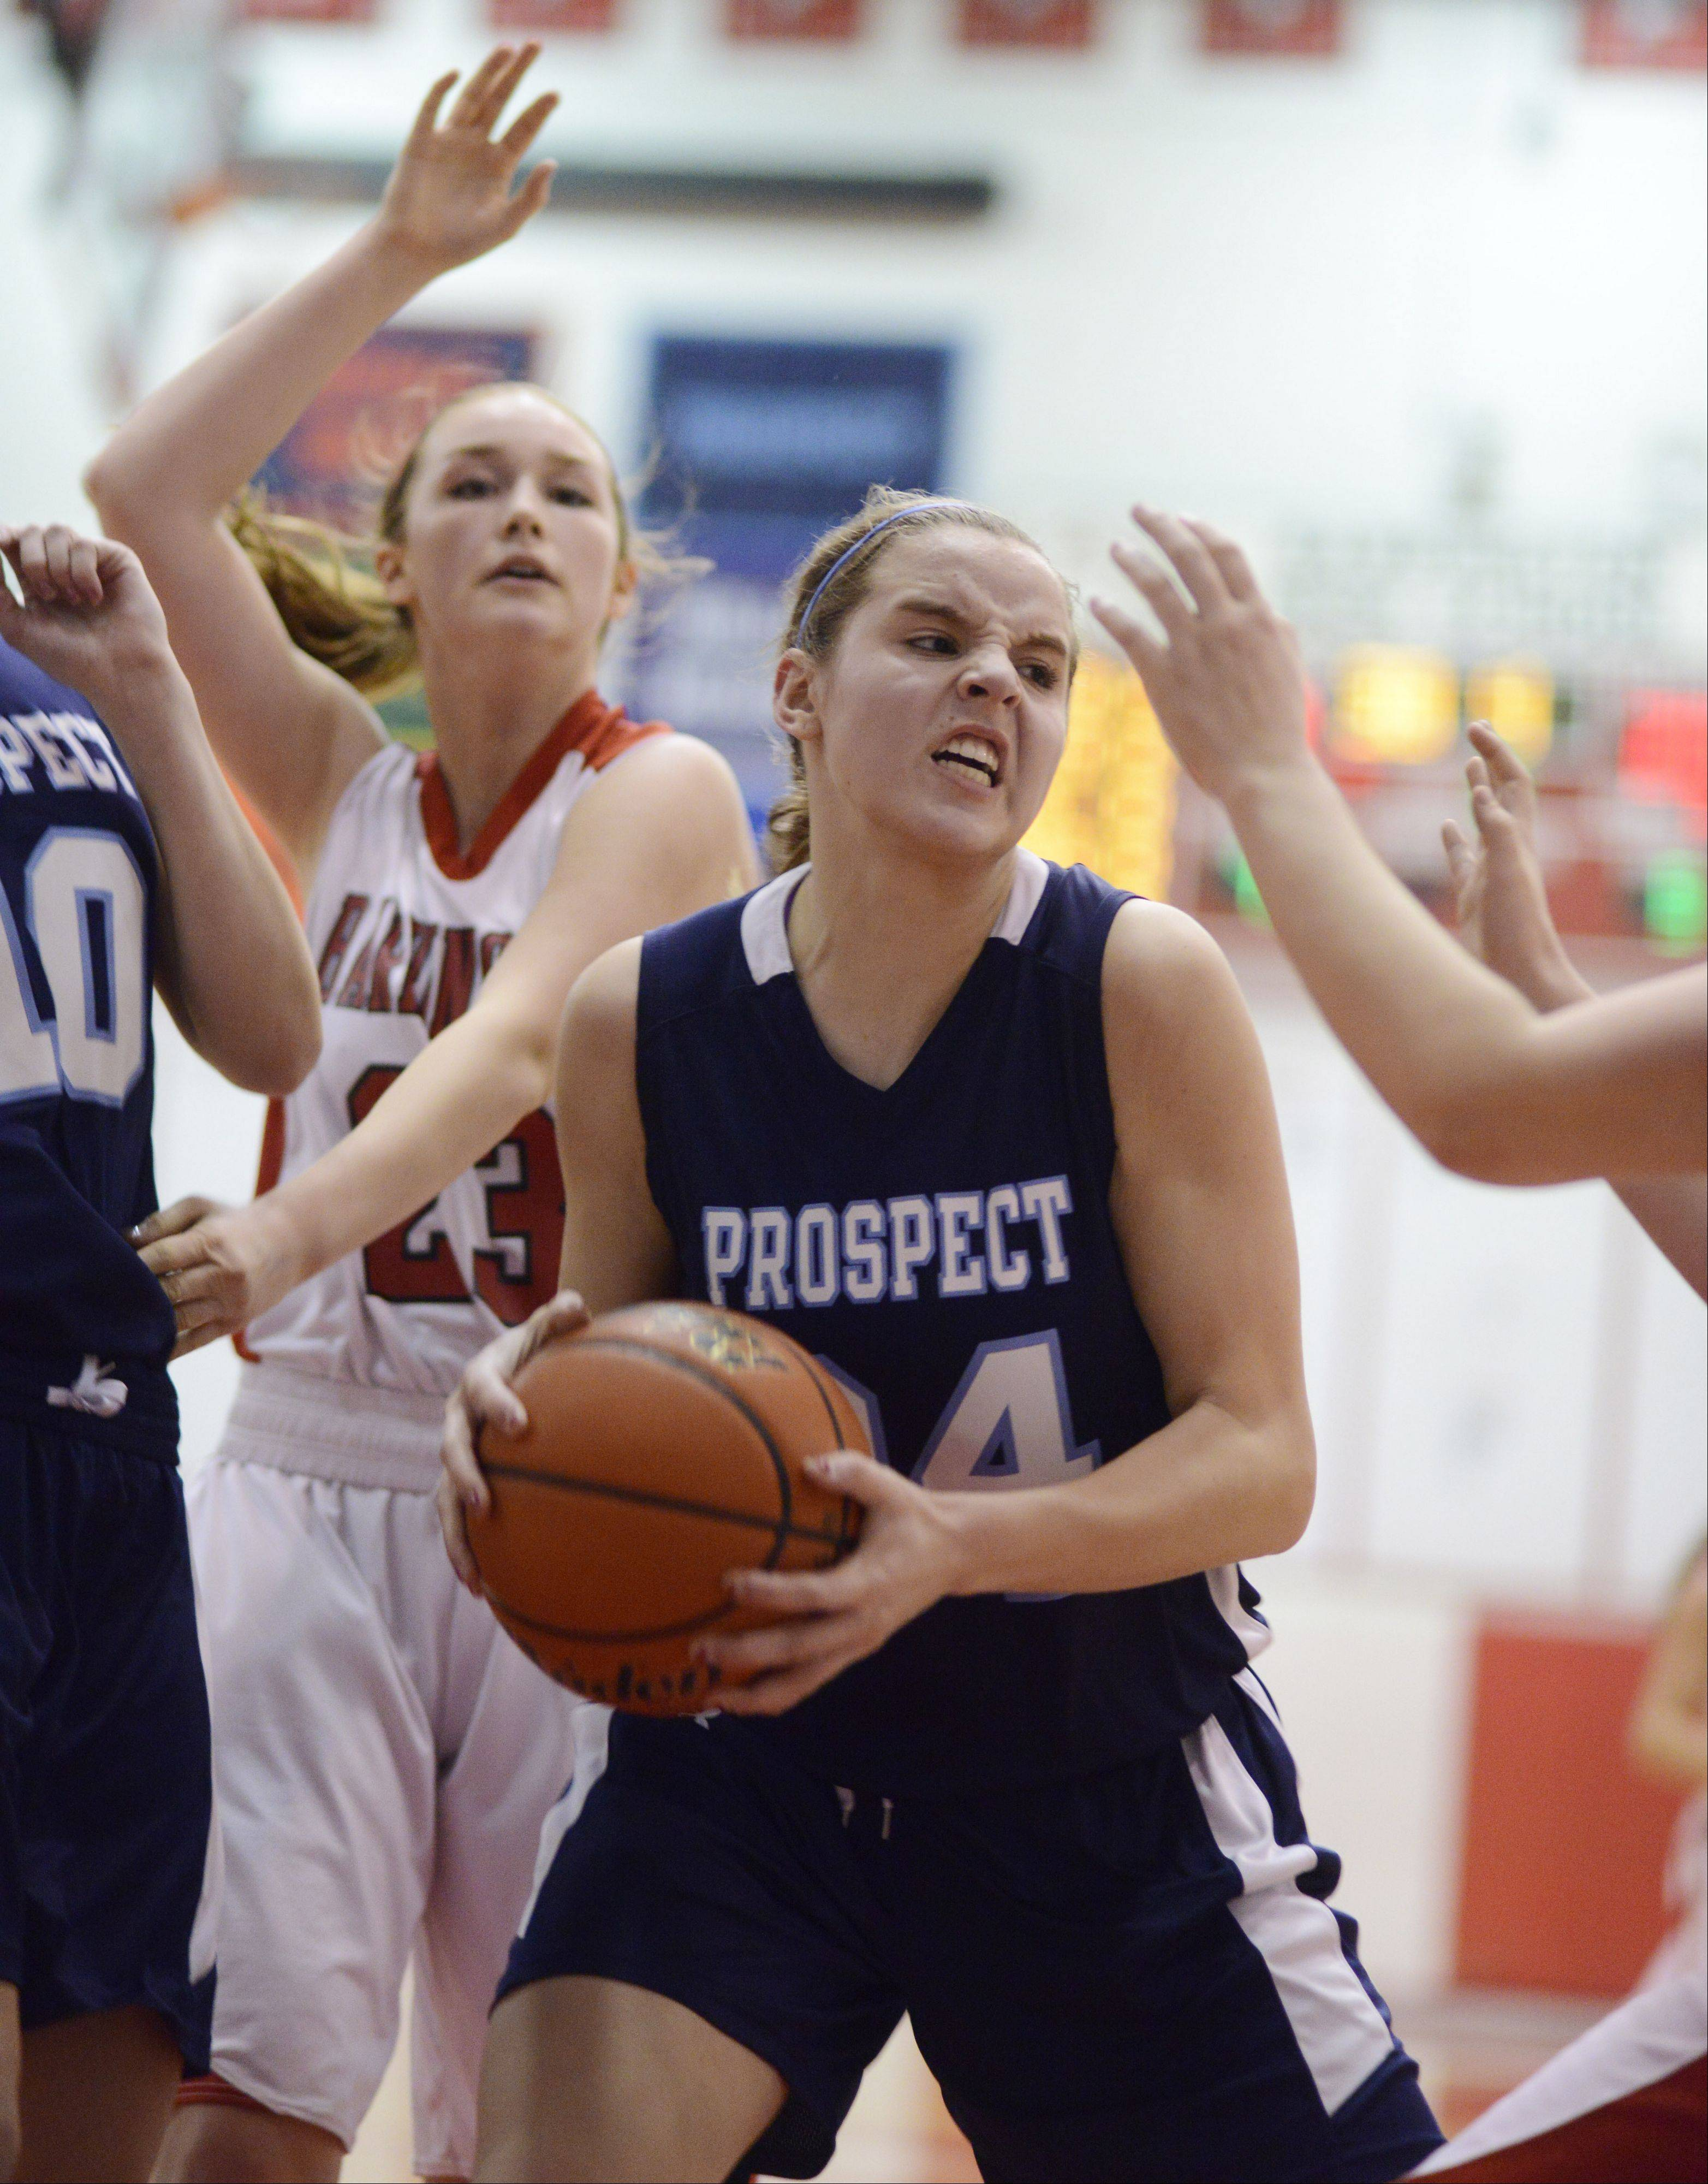 Prospect's Catherine Sherwood grabs a rebound between Barrington players including Brooke Gunderson, left.